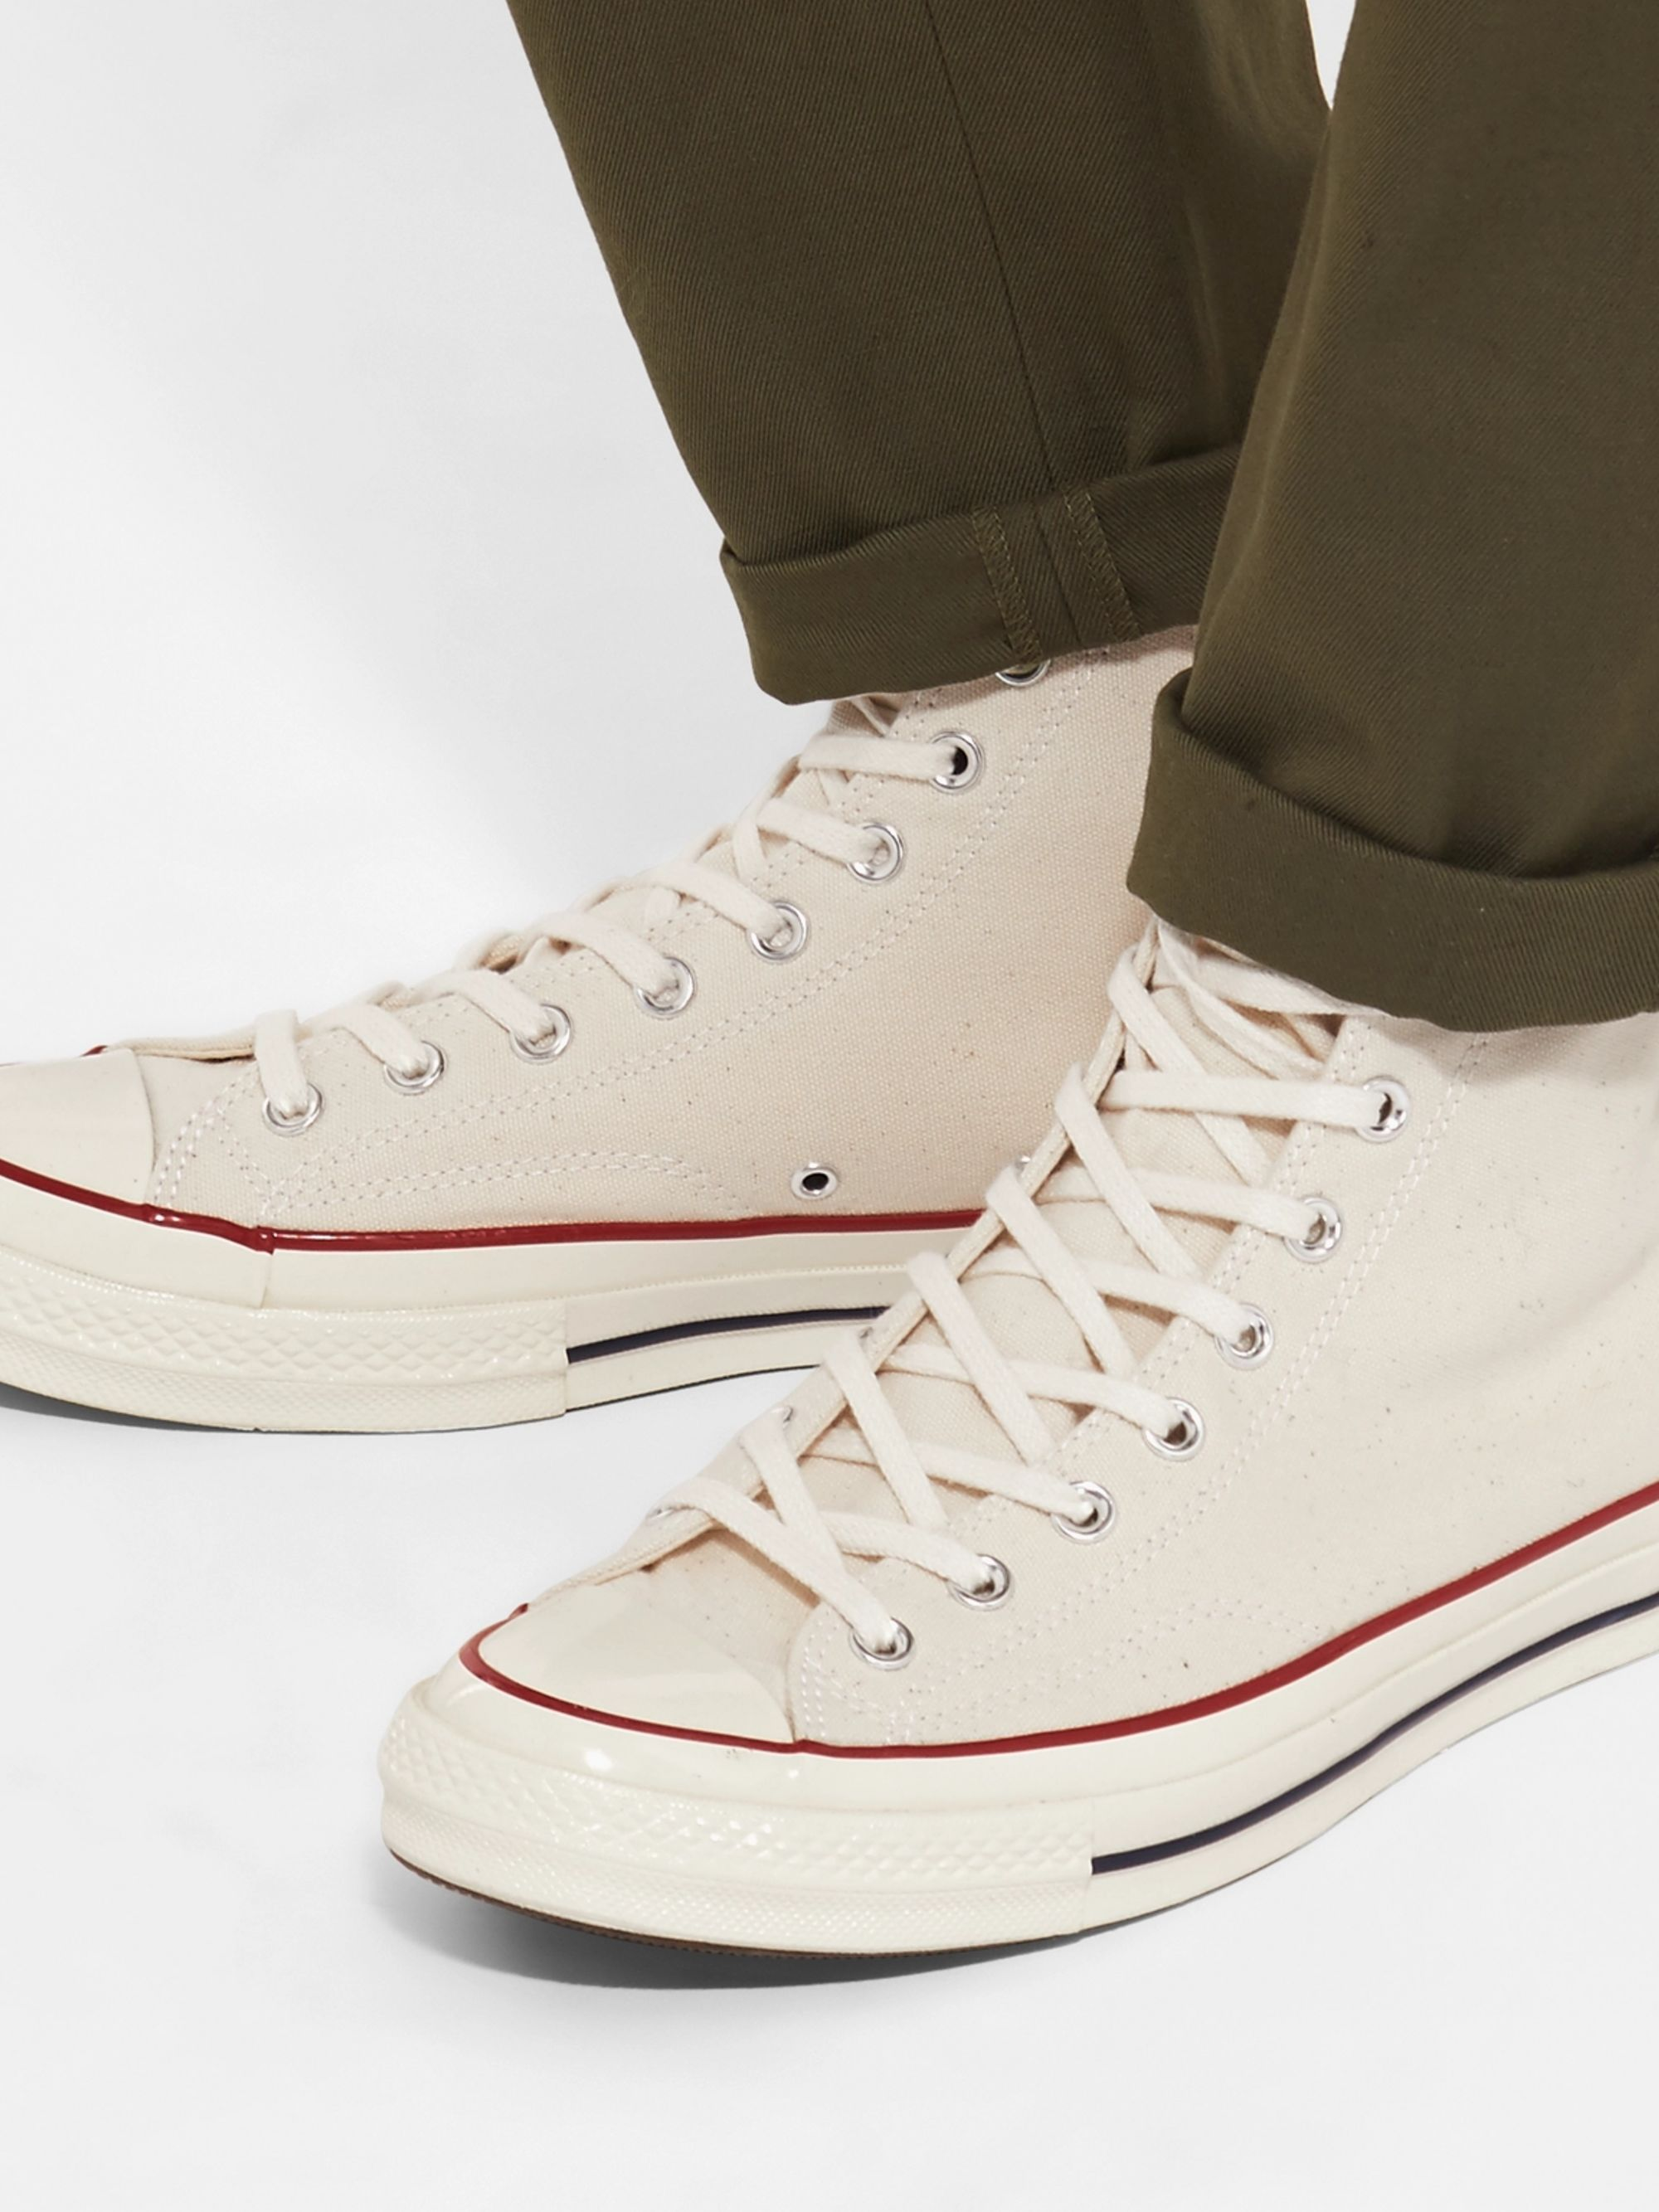 Converse Men's Chuck Taylor '70s Hi Top Sneakers